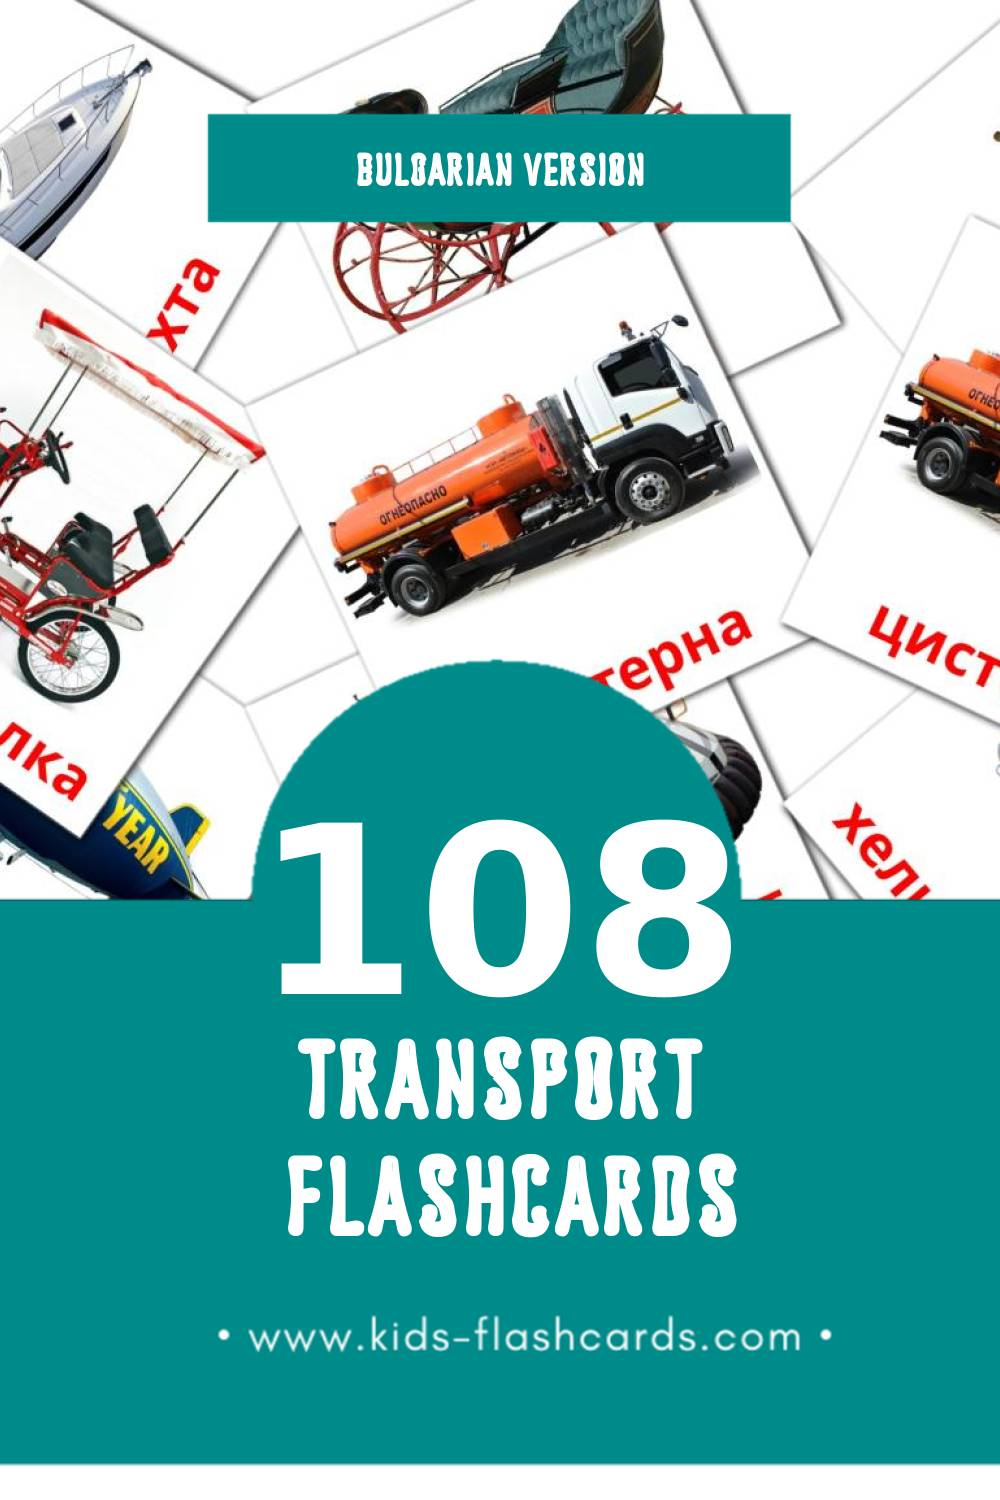 Visual Транспорт Flashcards for Toddlers (108 cards in Bulgarian)